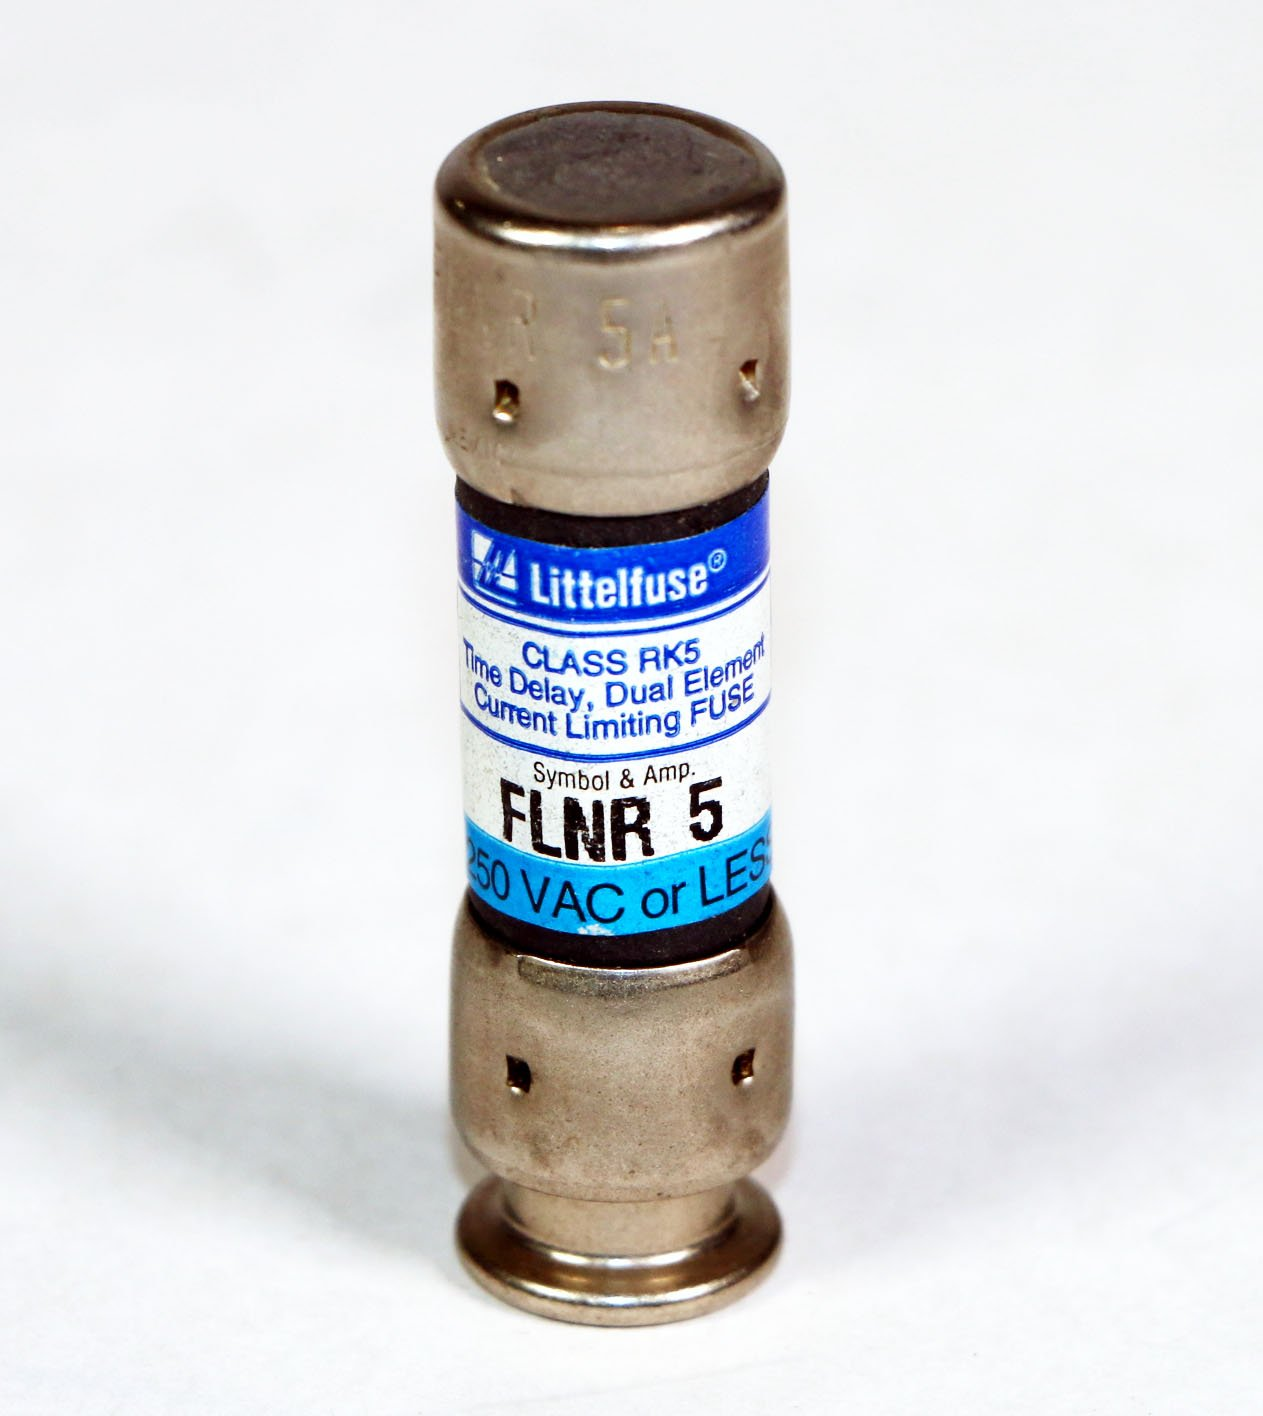 FLNR5 - LOT OF 3 - FUSES FLNR-5 LITTELFUSE 5 AMP, 250V RK5 Dual-Element Time-Delay Fuse 250VAC FLNR 5A